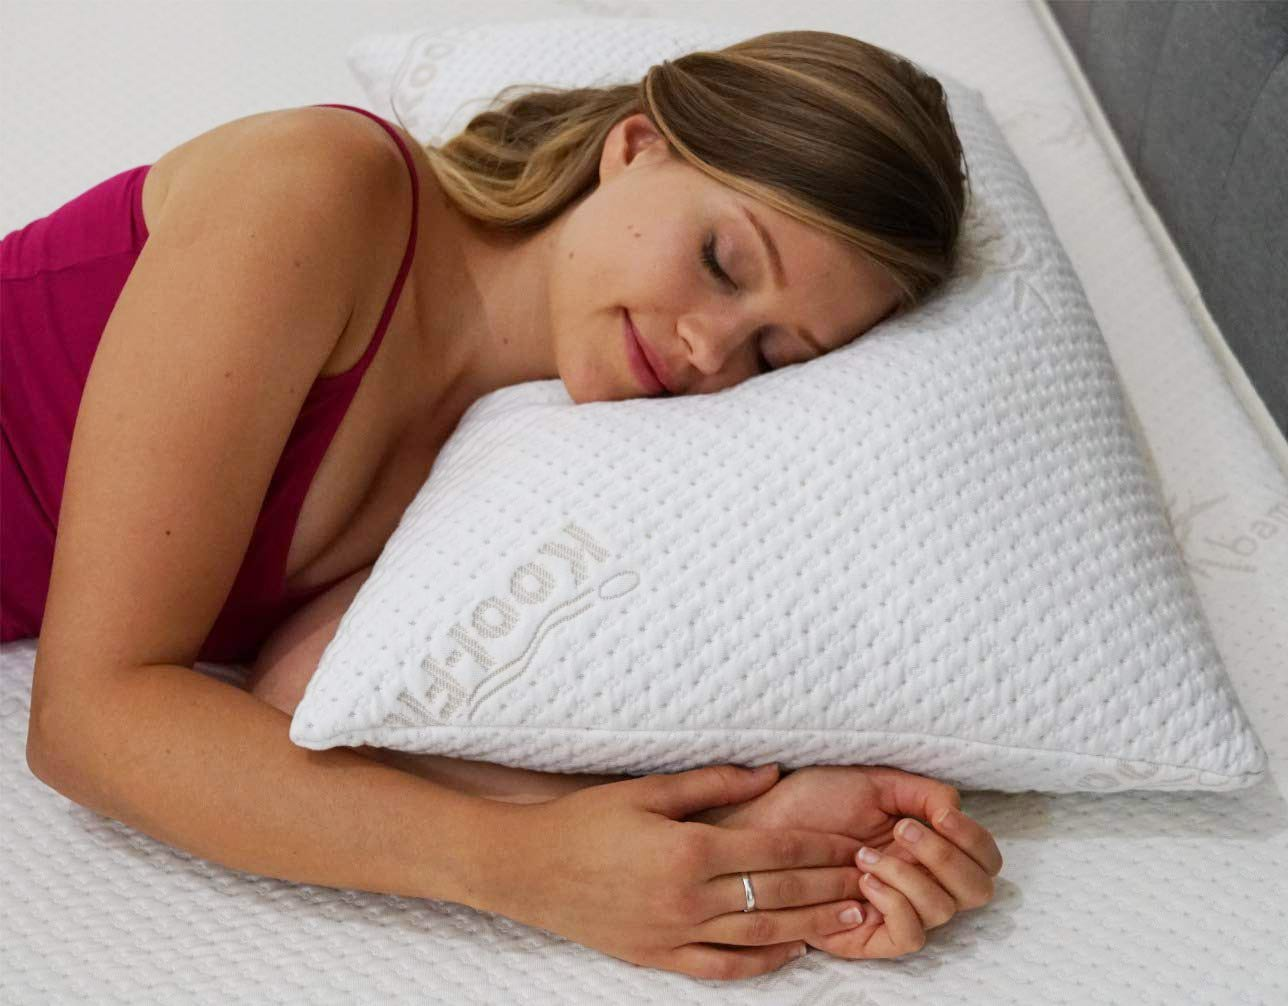 snuggle pedic pillow review01